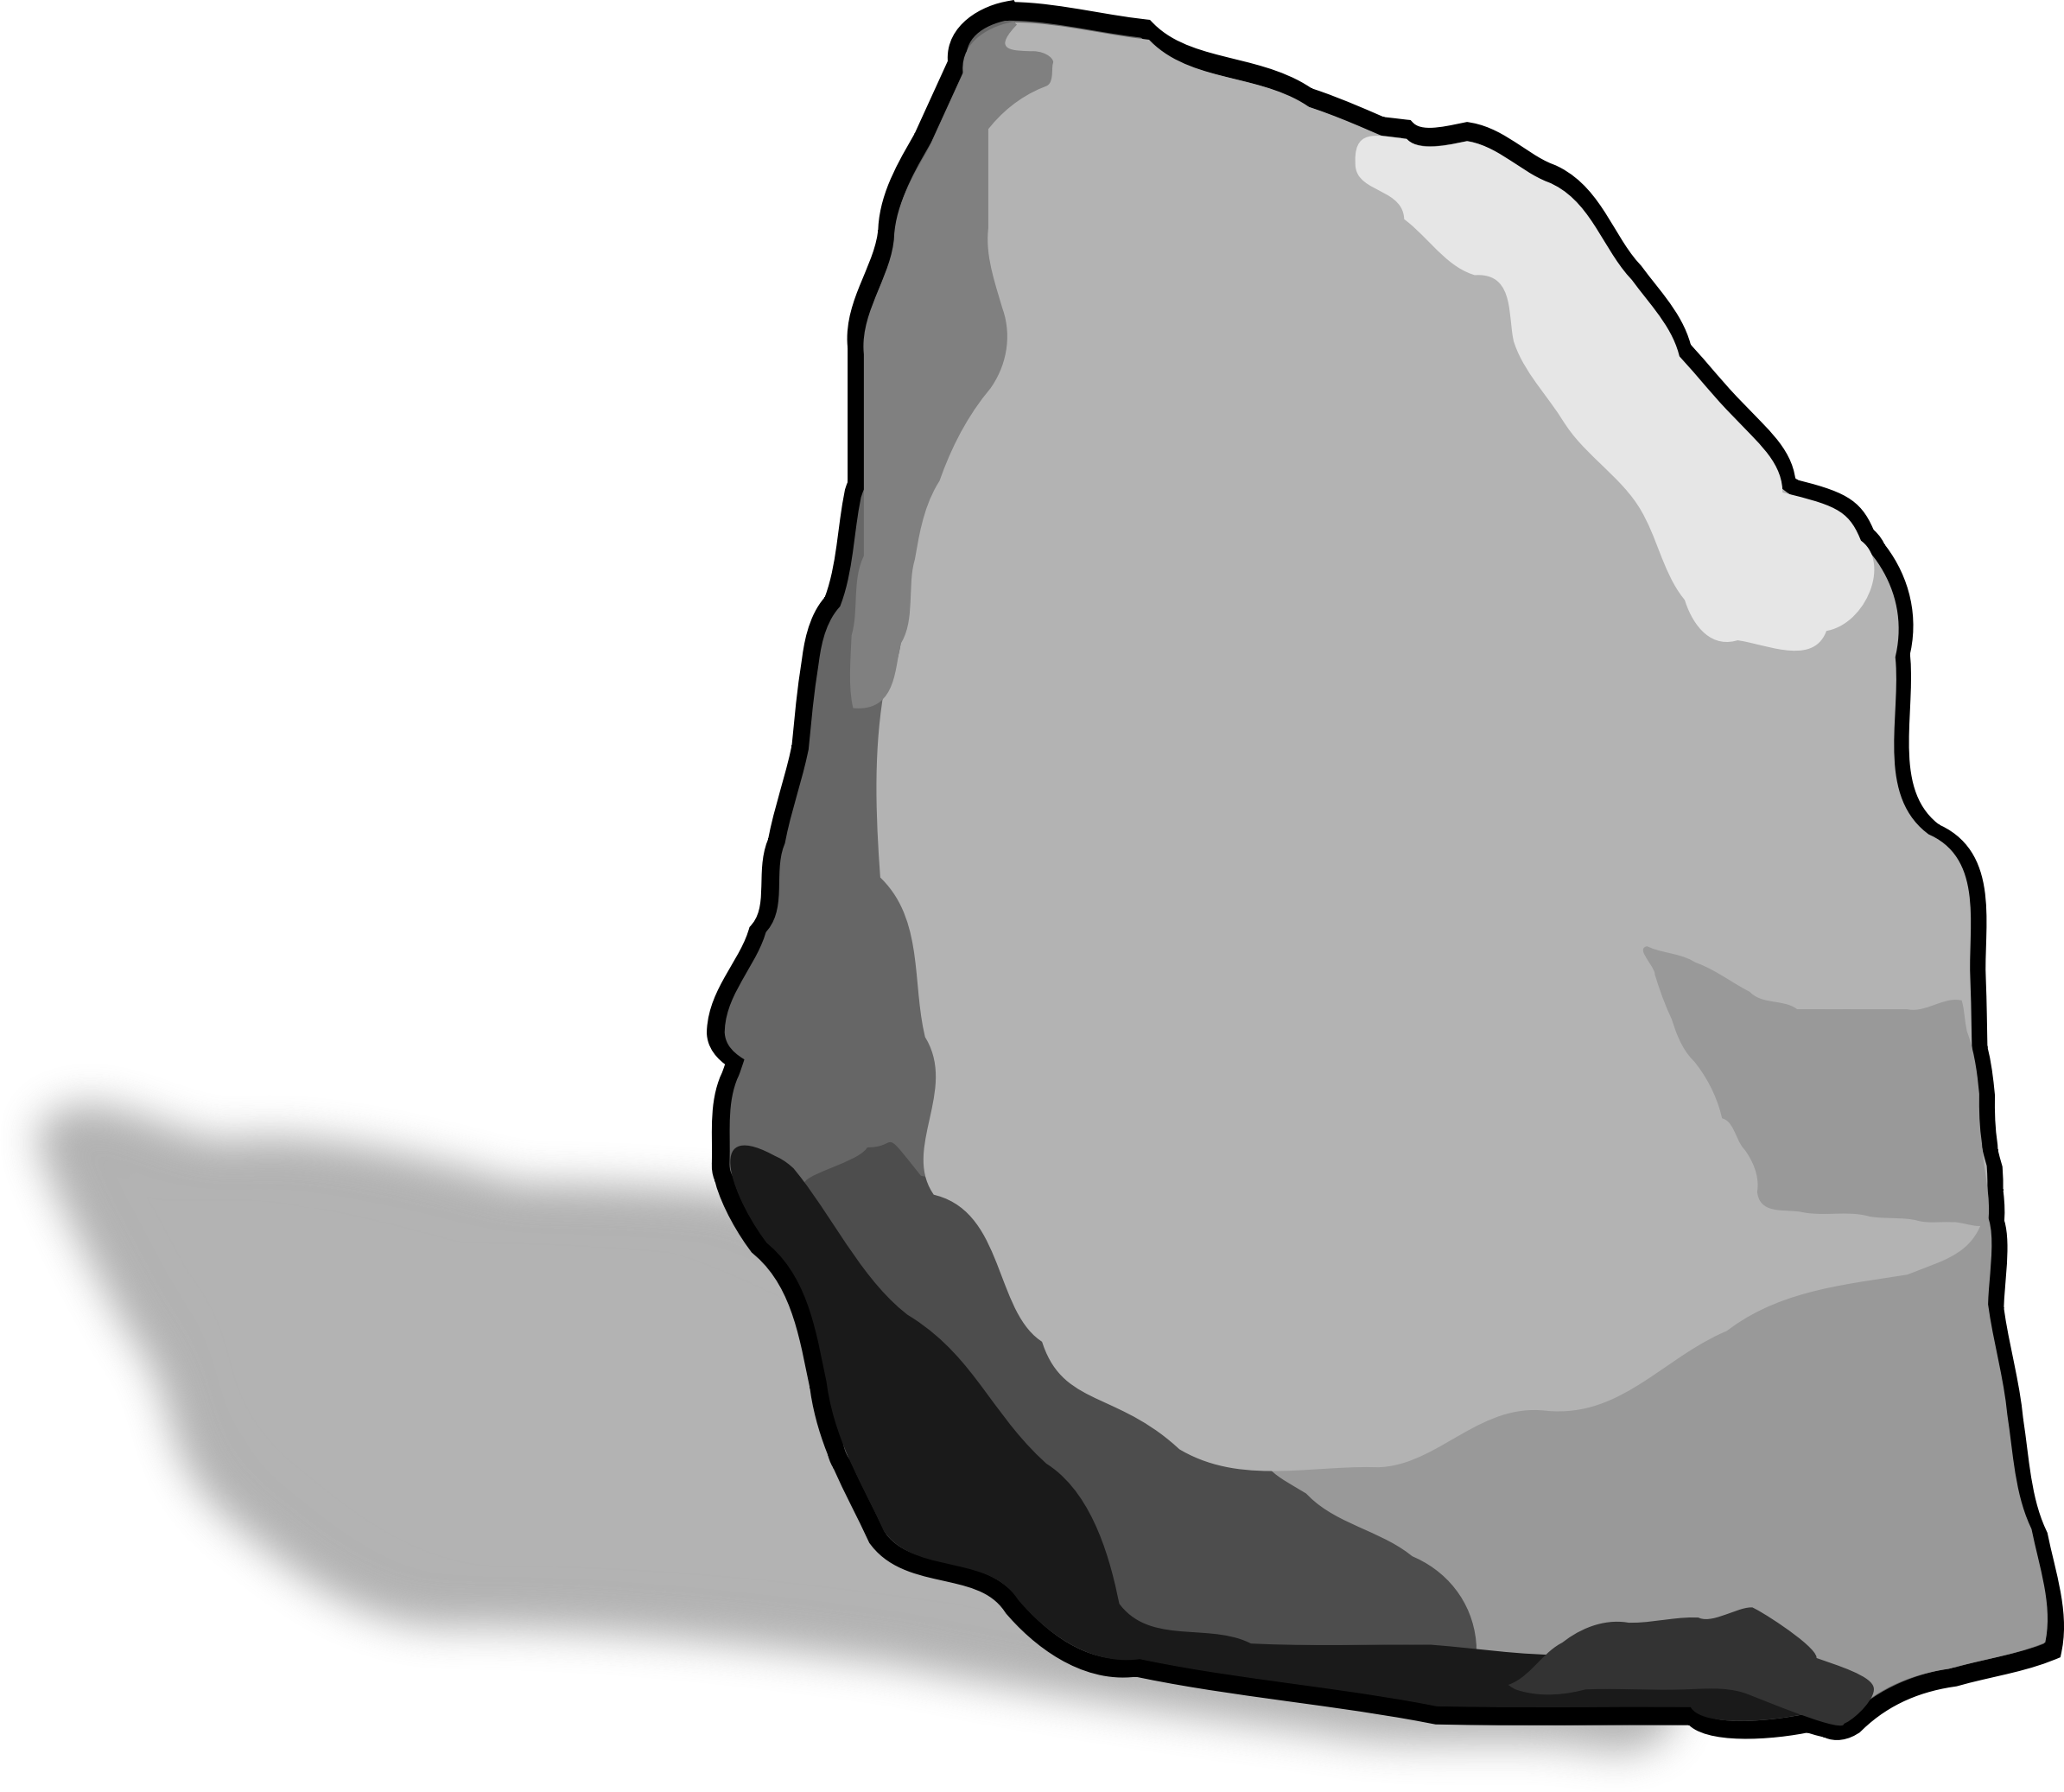 Clipart boulders image library download Free Cartoon Rock Cliparts, Download Free Clip Art, Free Clip Art on ... image library download